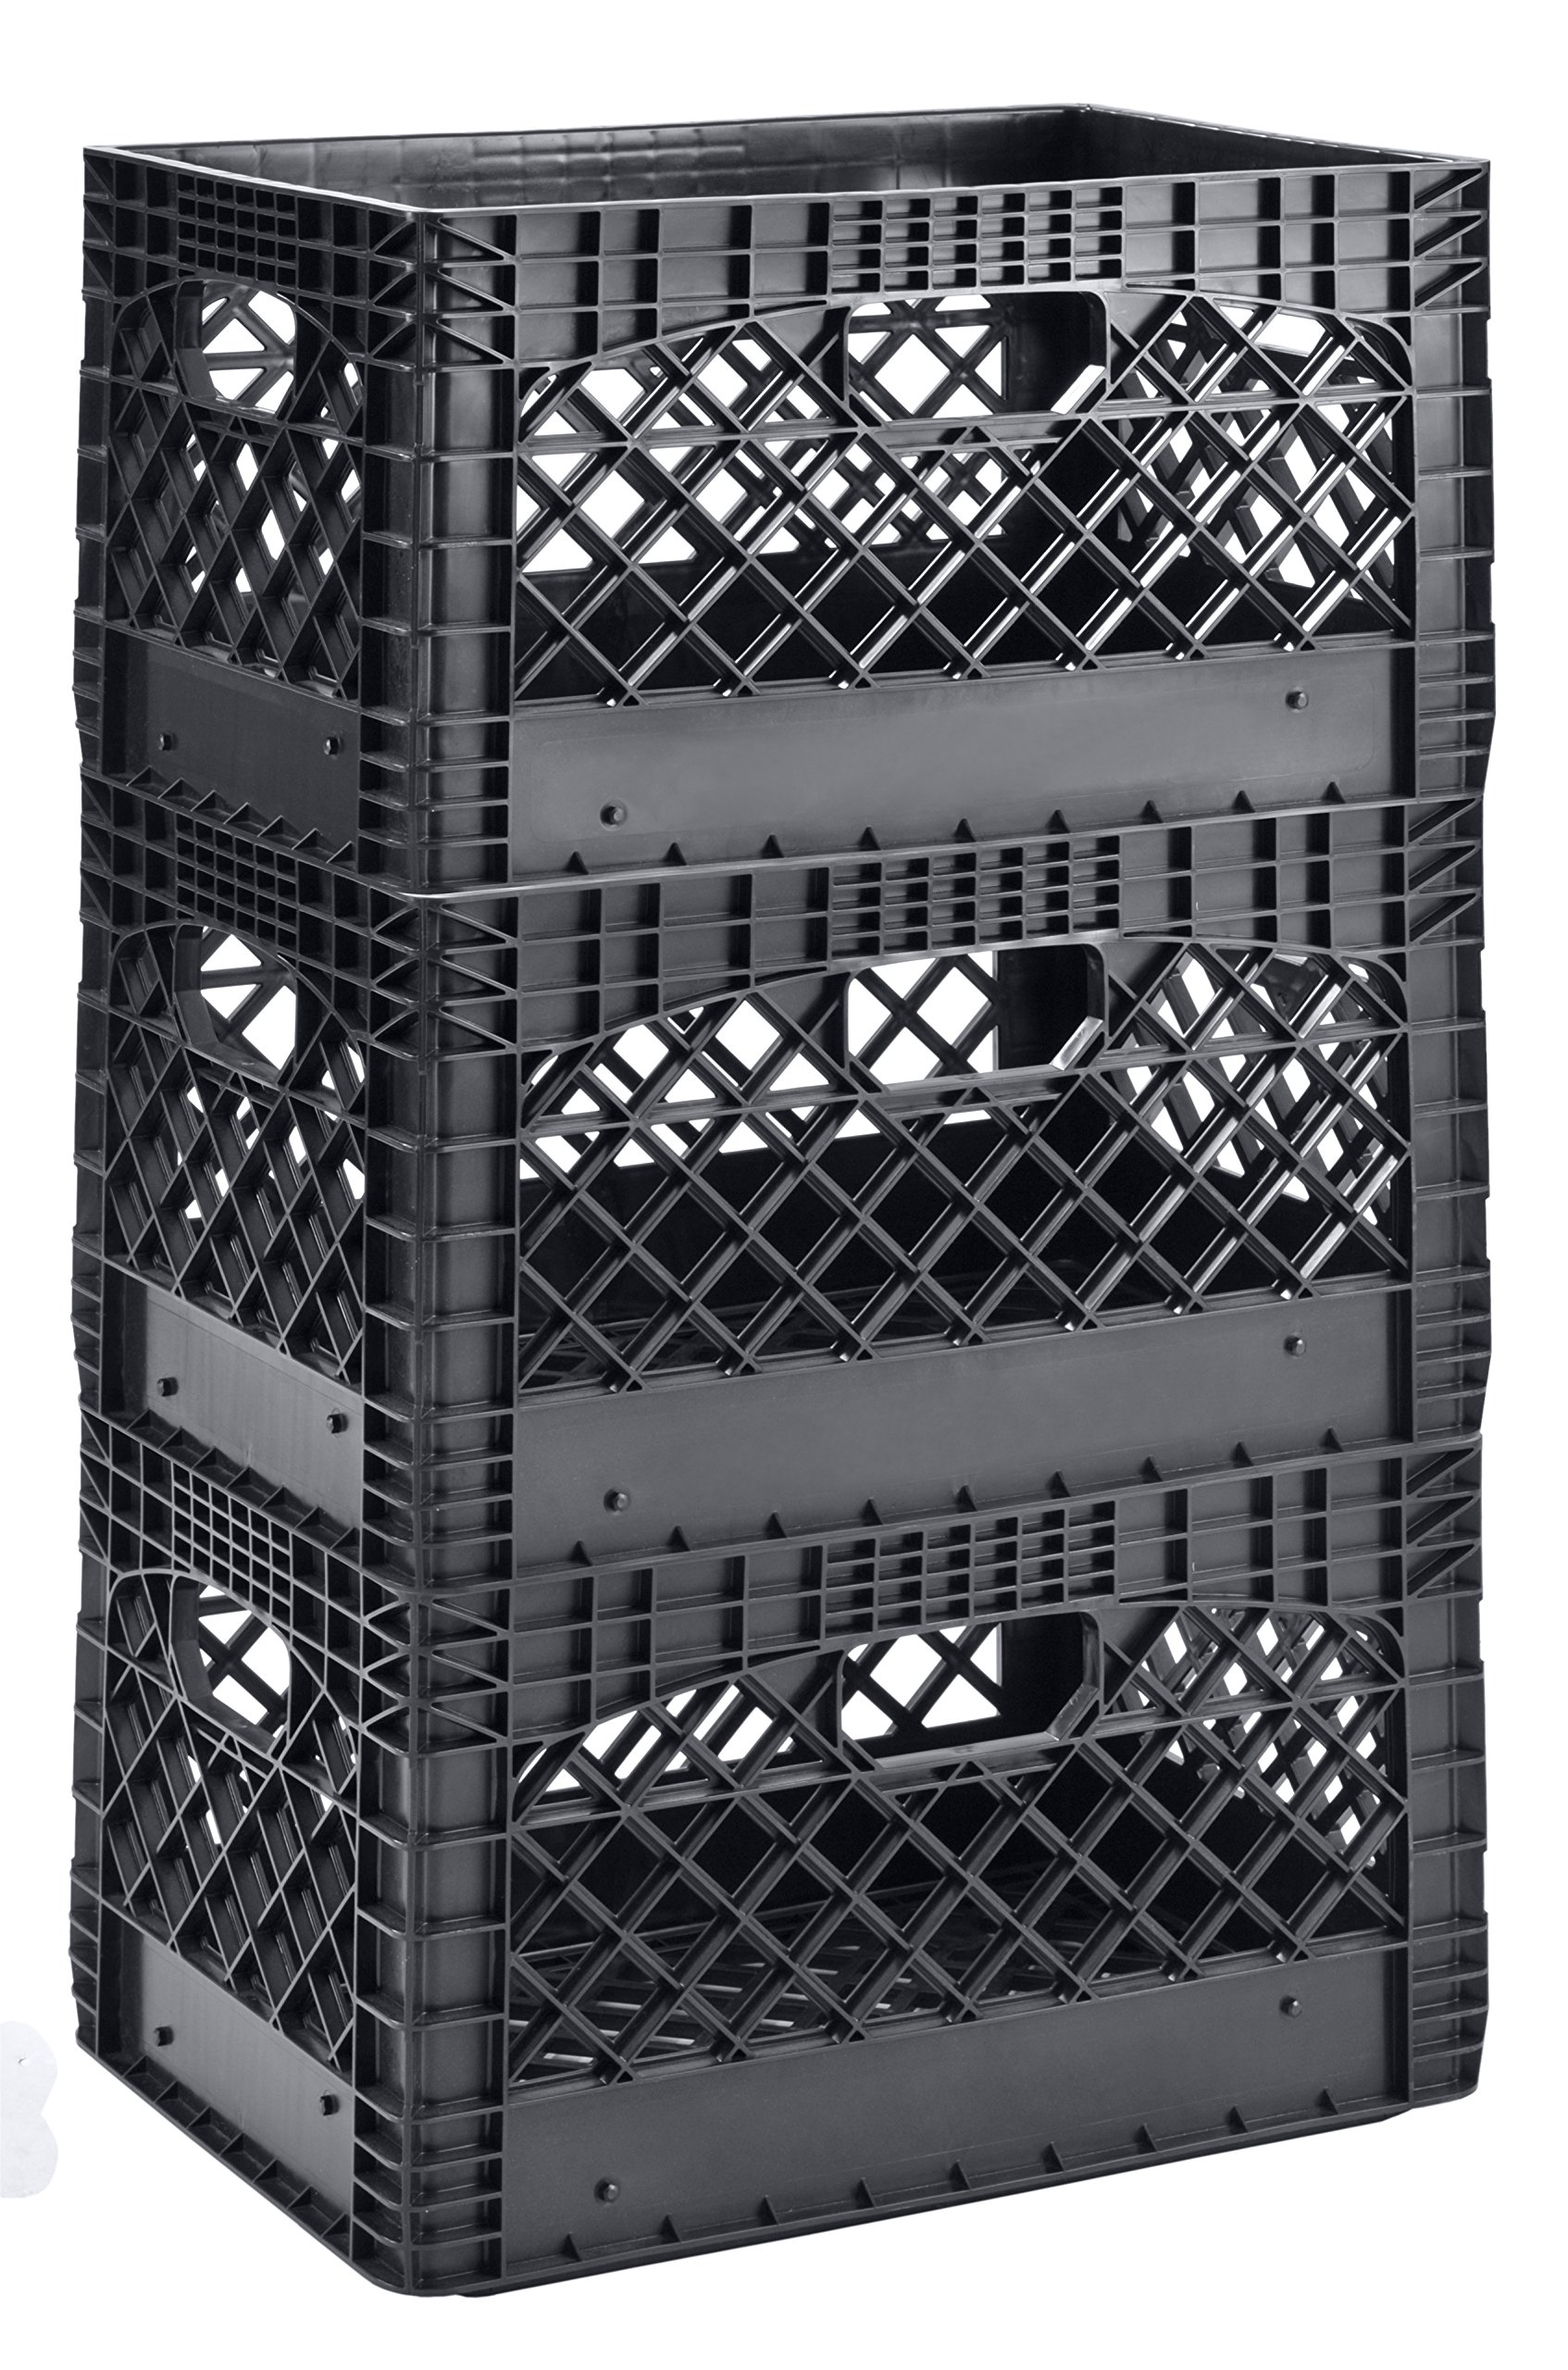 Muscle Rack PMK24QTB-3 24 Quart 3 Pack Black Heavy Duty Rectangular Stackable Dairy Milk Crates, 11'' Height, 19'' Width by Muscle Rack